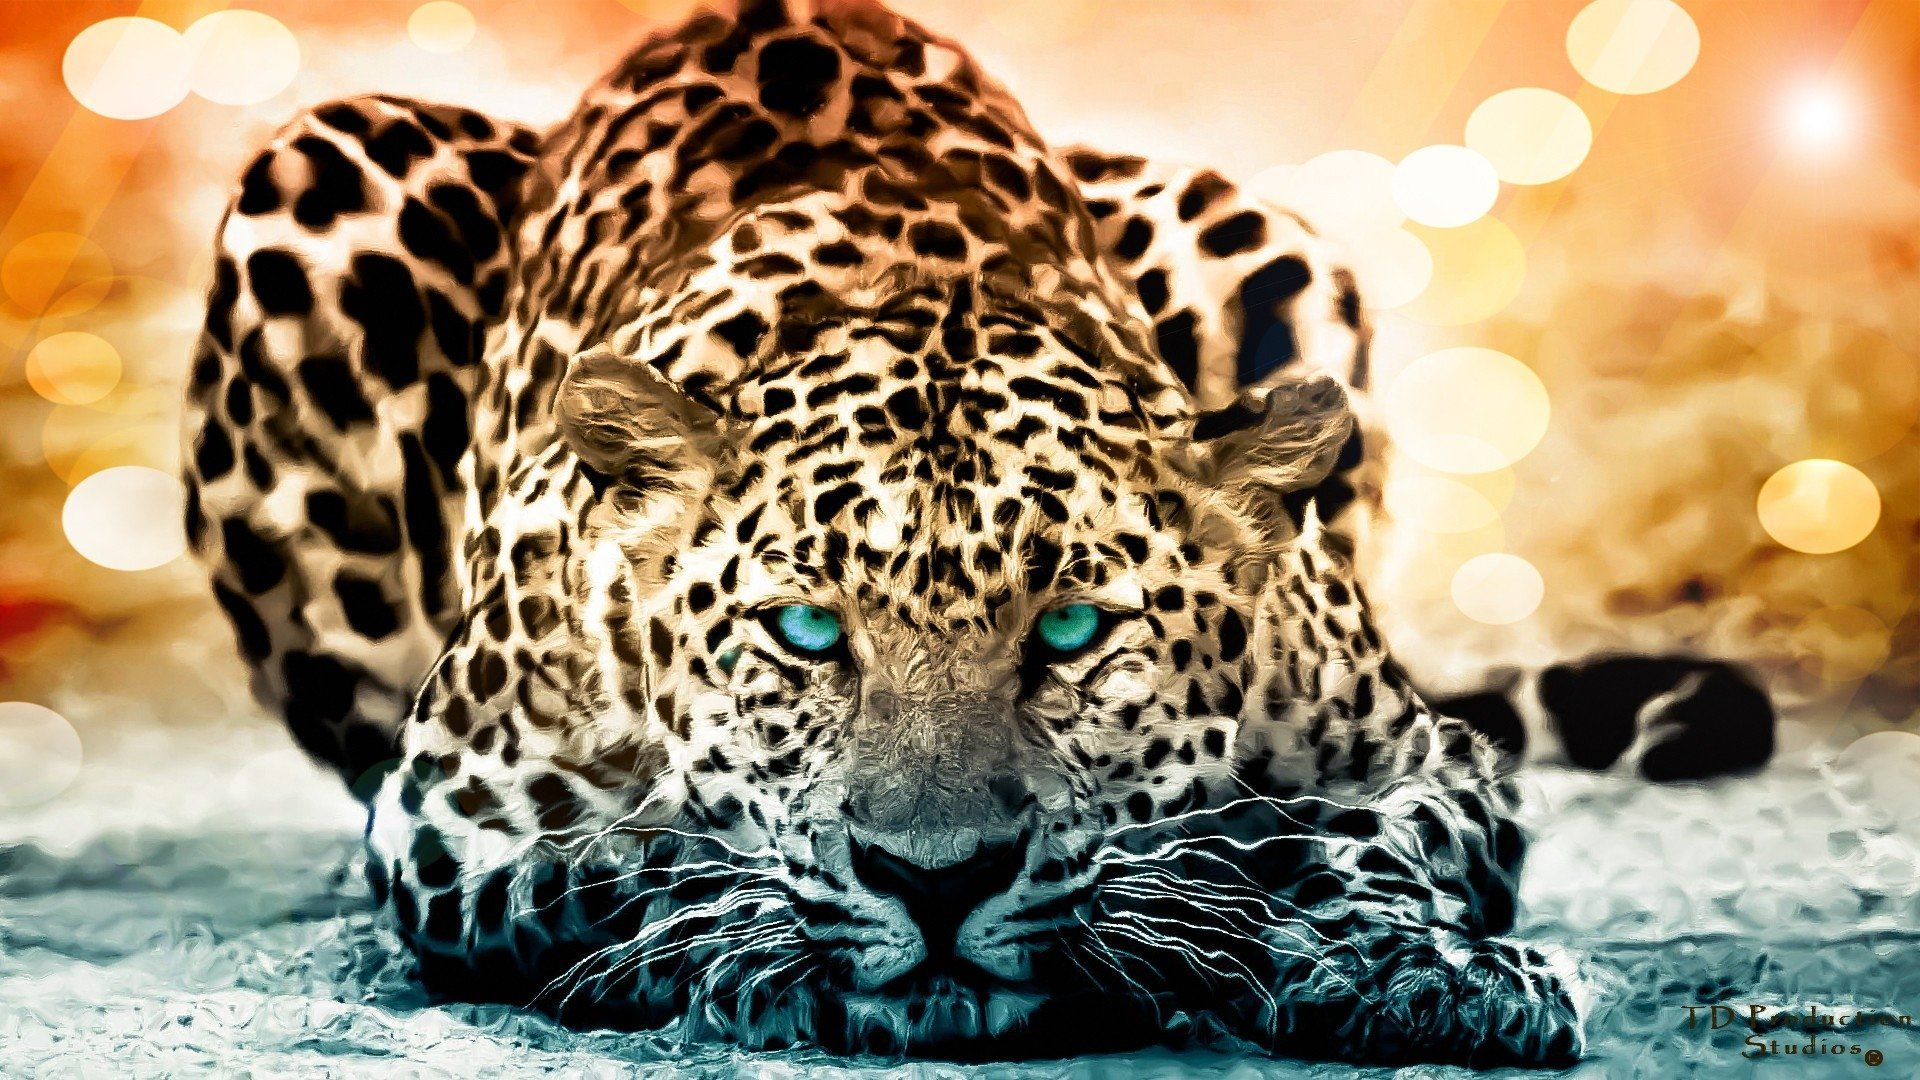 190 jaguar hd wallpapers | backgrounds - wallpaper abyss | animalz